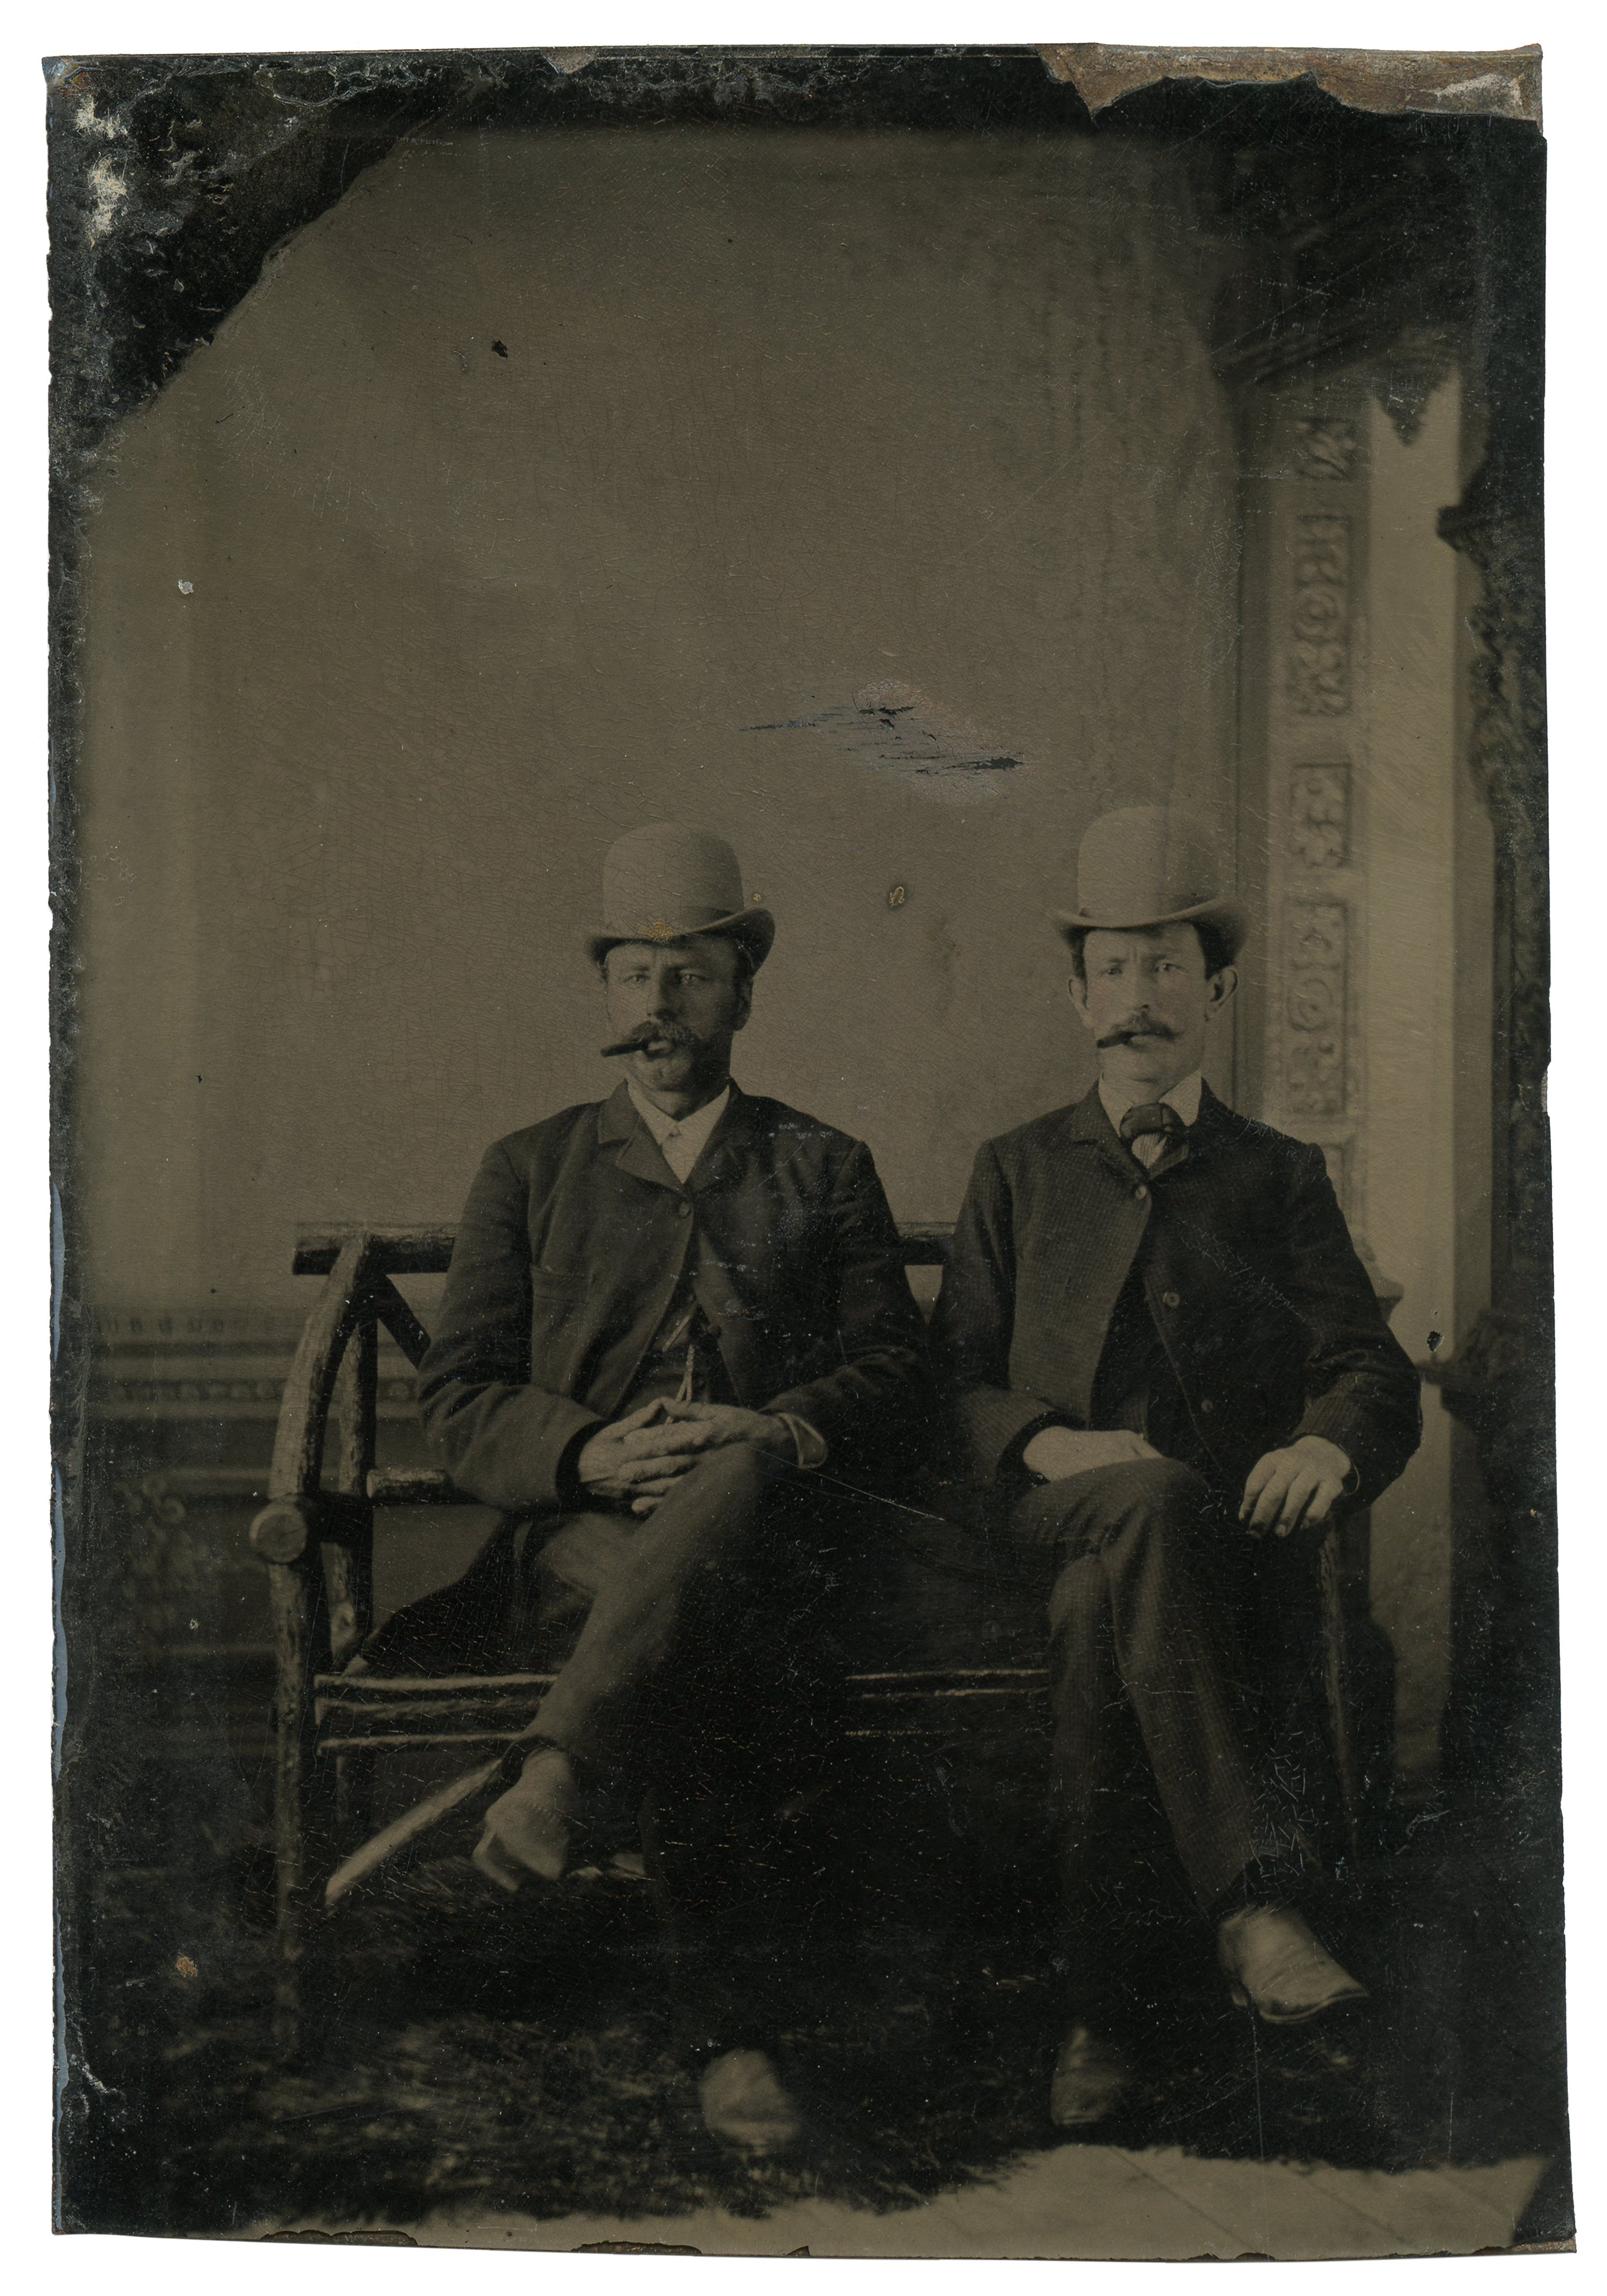 An Antique 19th Century Tintype Photograph Of Two Gentleman Smoking Cigars